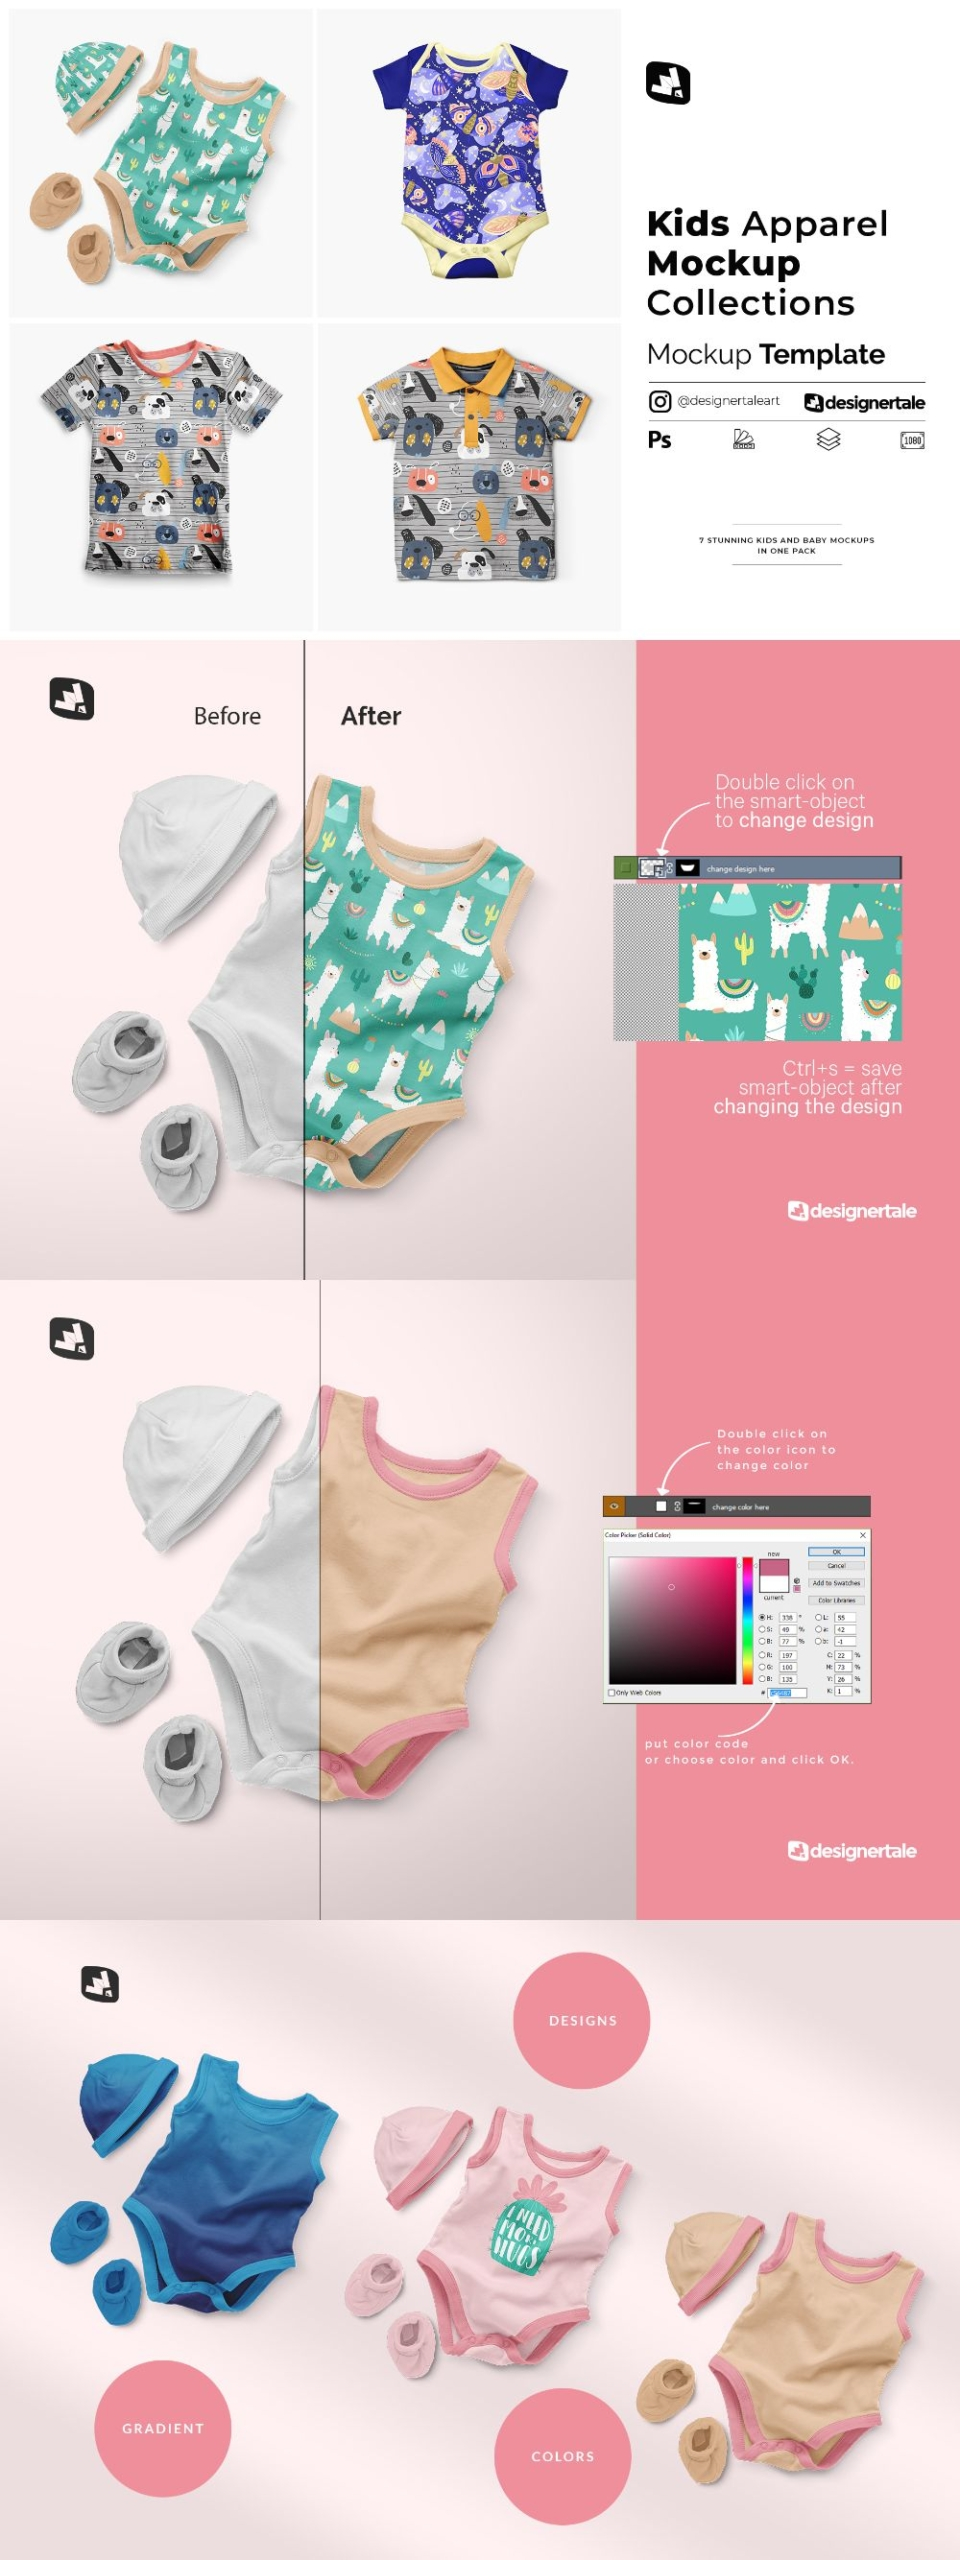 Kids Apparel Mockup Collections